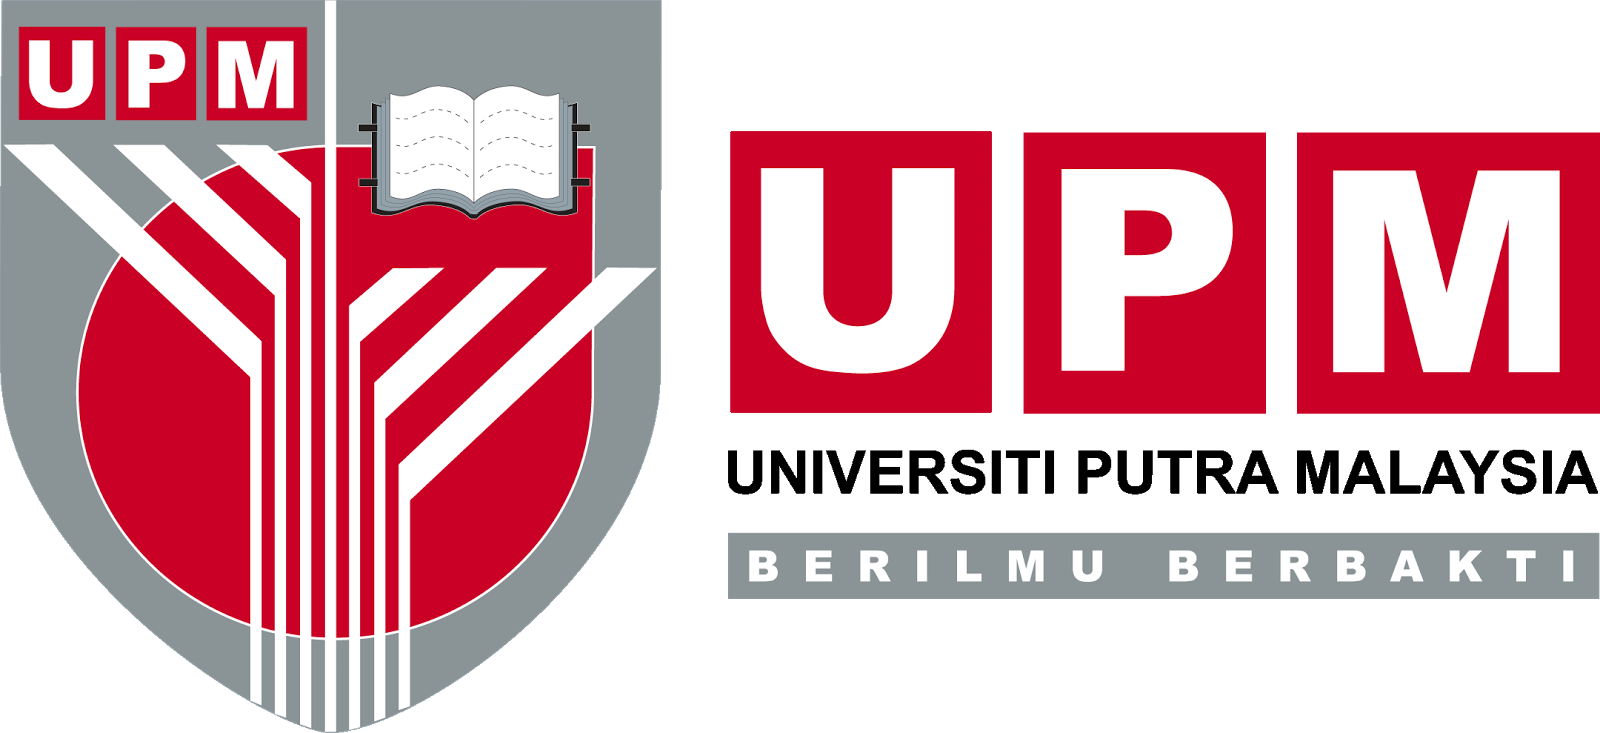 Love: upm logoU Letter Design Wallpaper